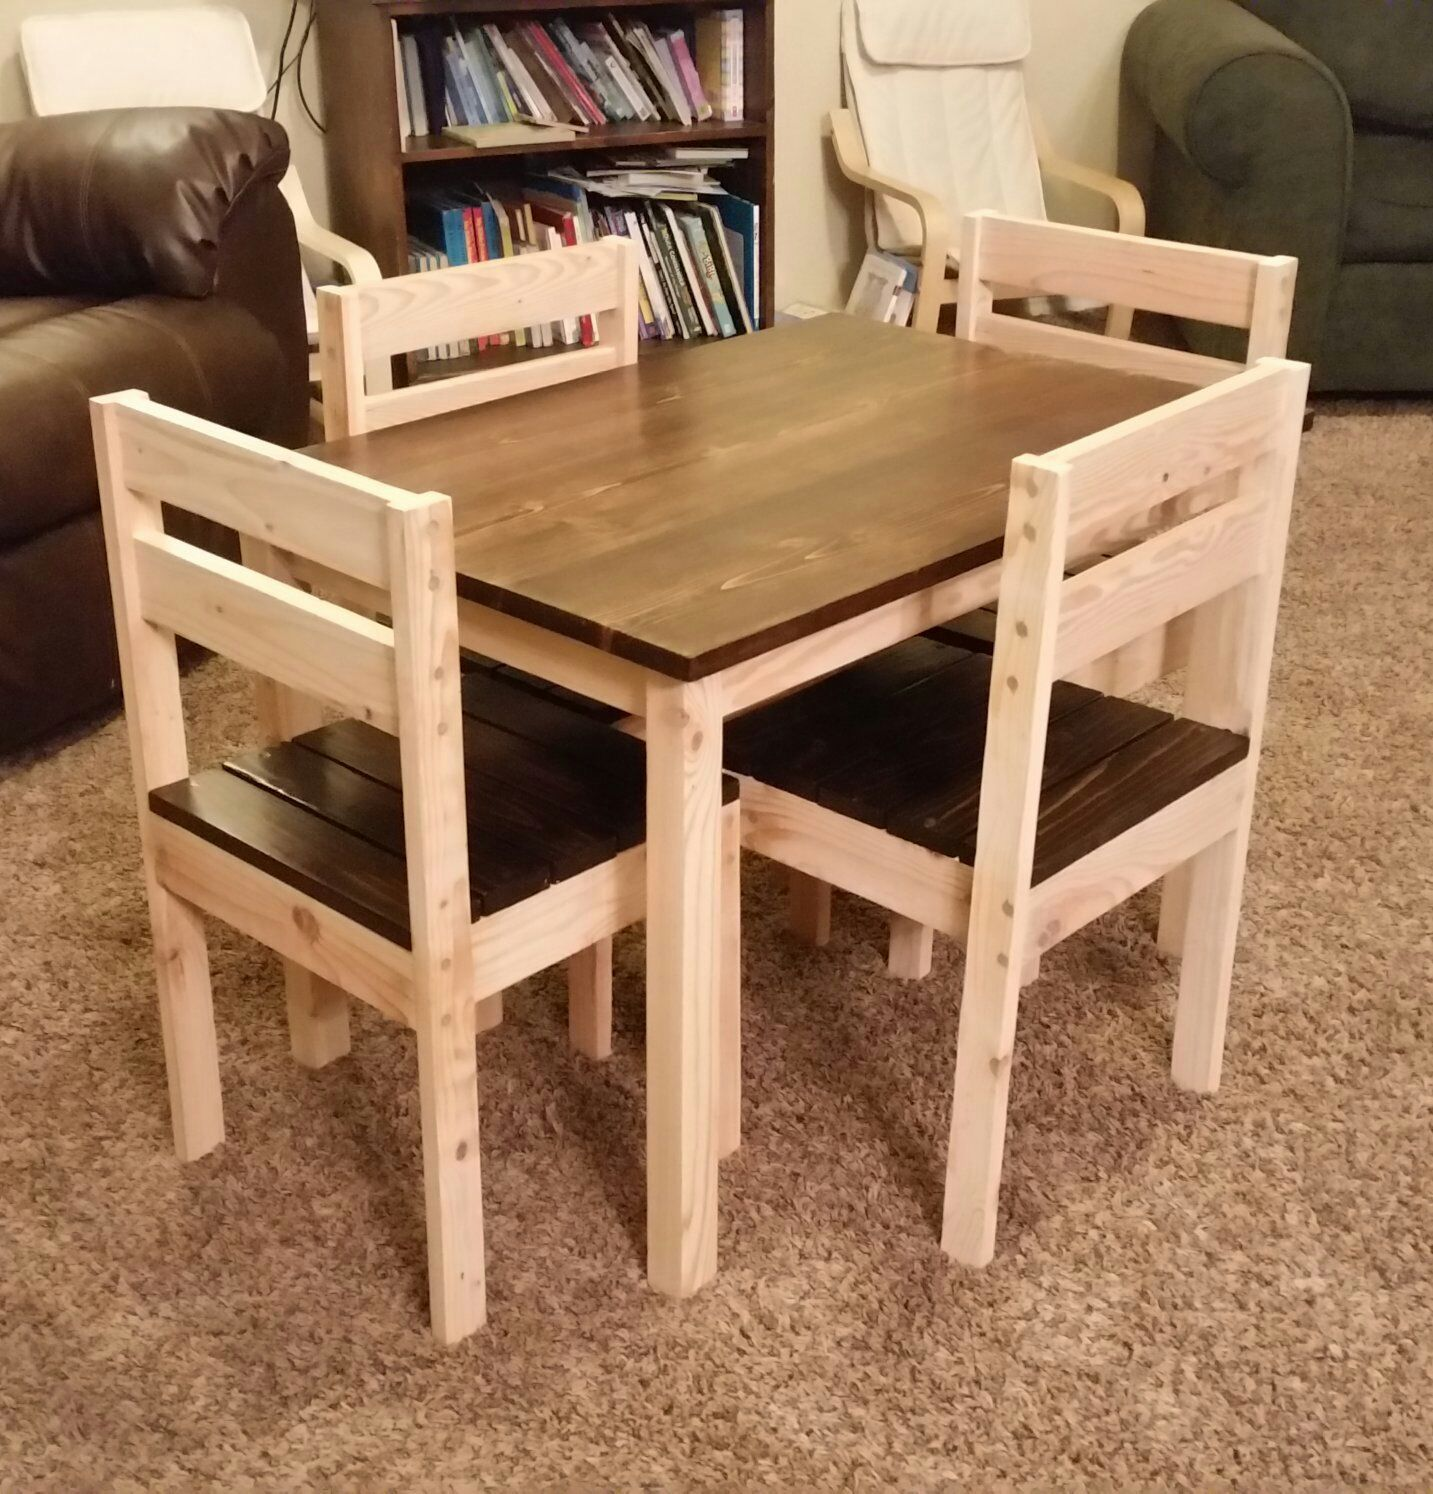 Infant Table And Chairs Kids Table And Chairs Do It Yourself Home Projects From Ana